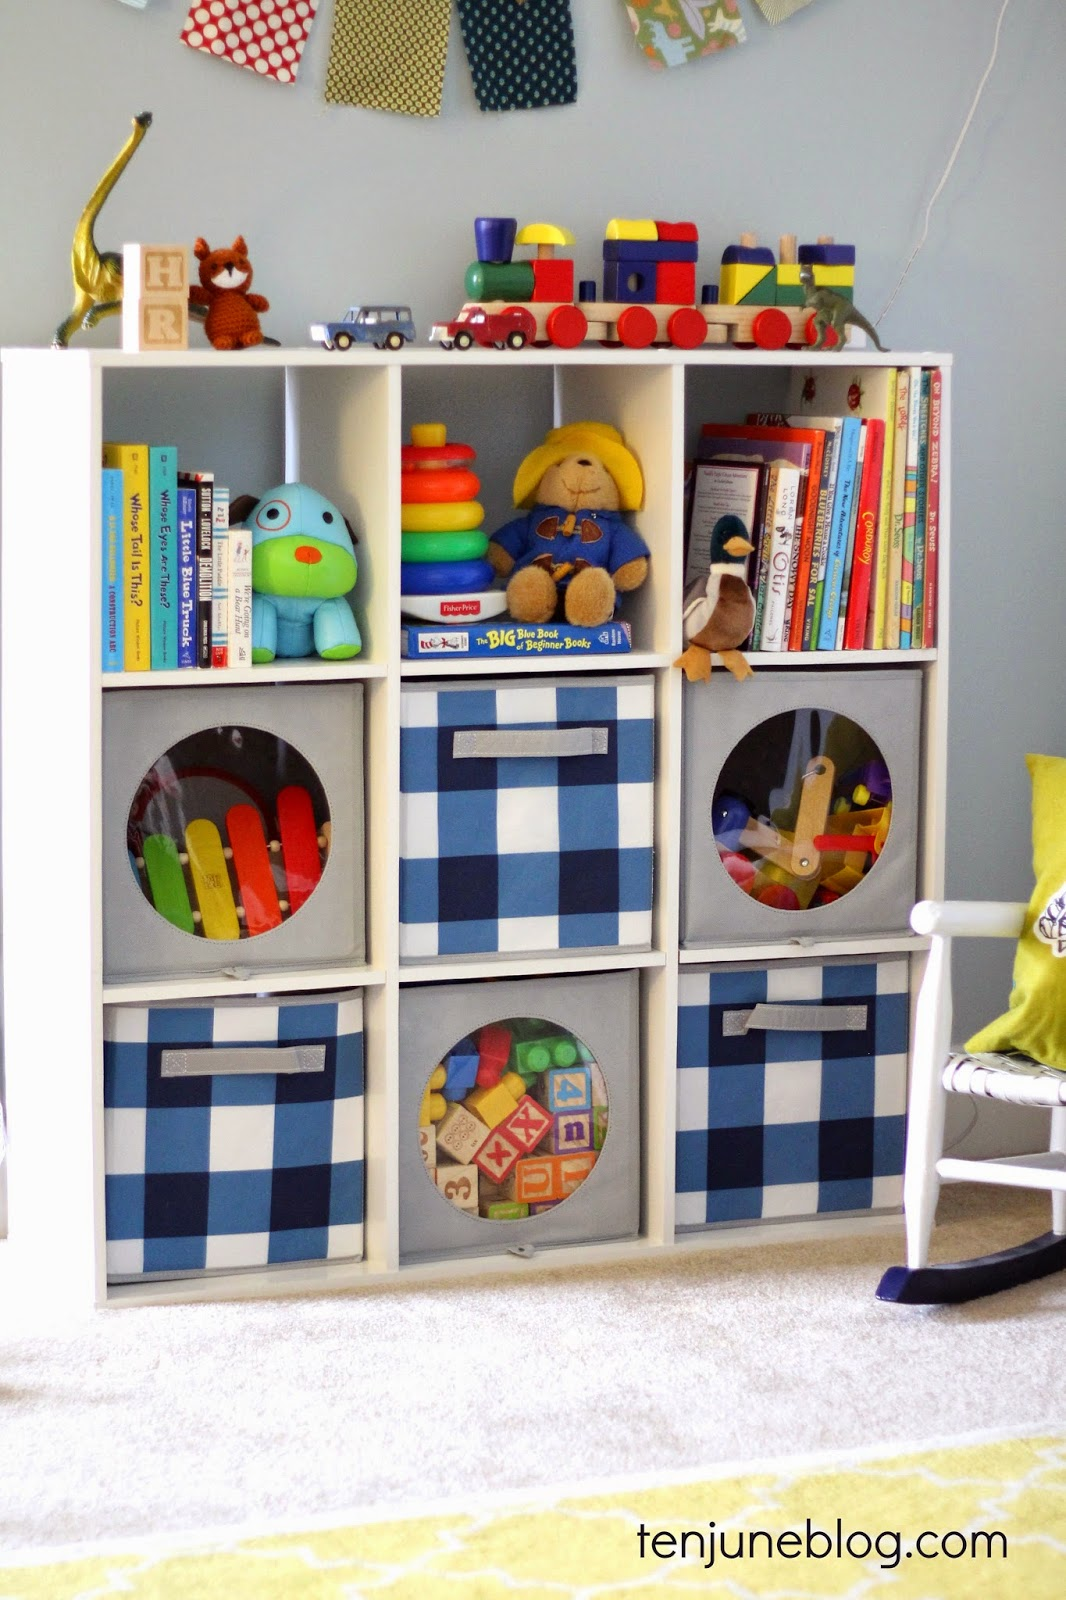 Kids Room With Toys ten june: kids room/play room toy storage ideas